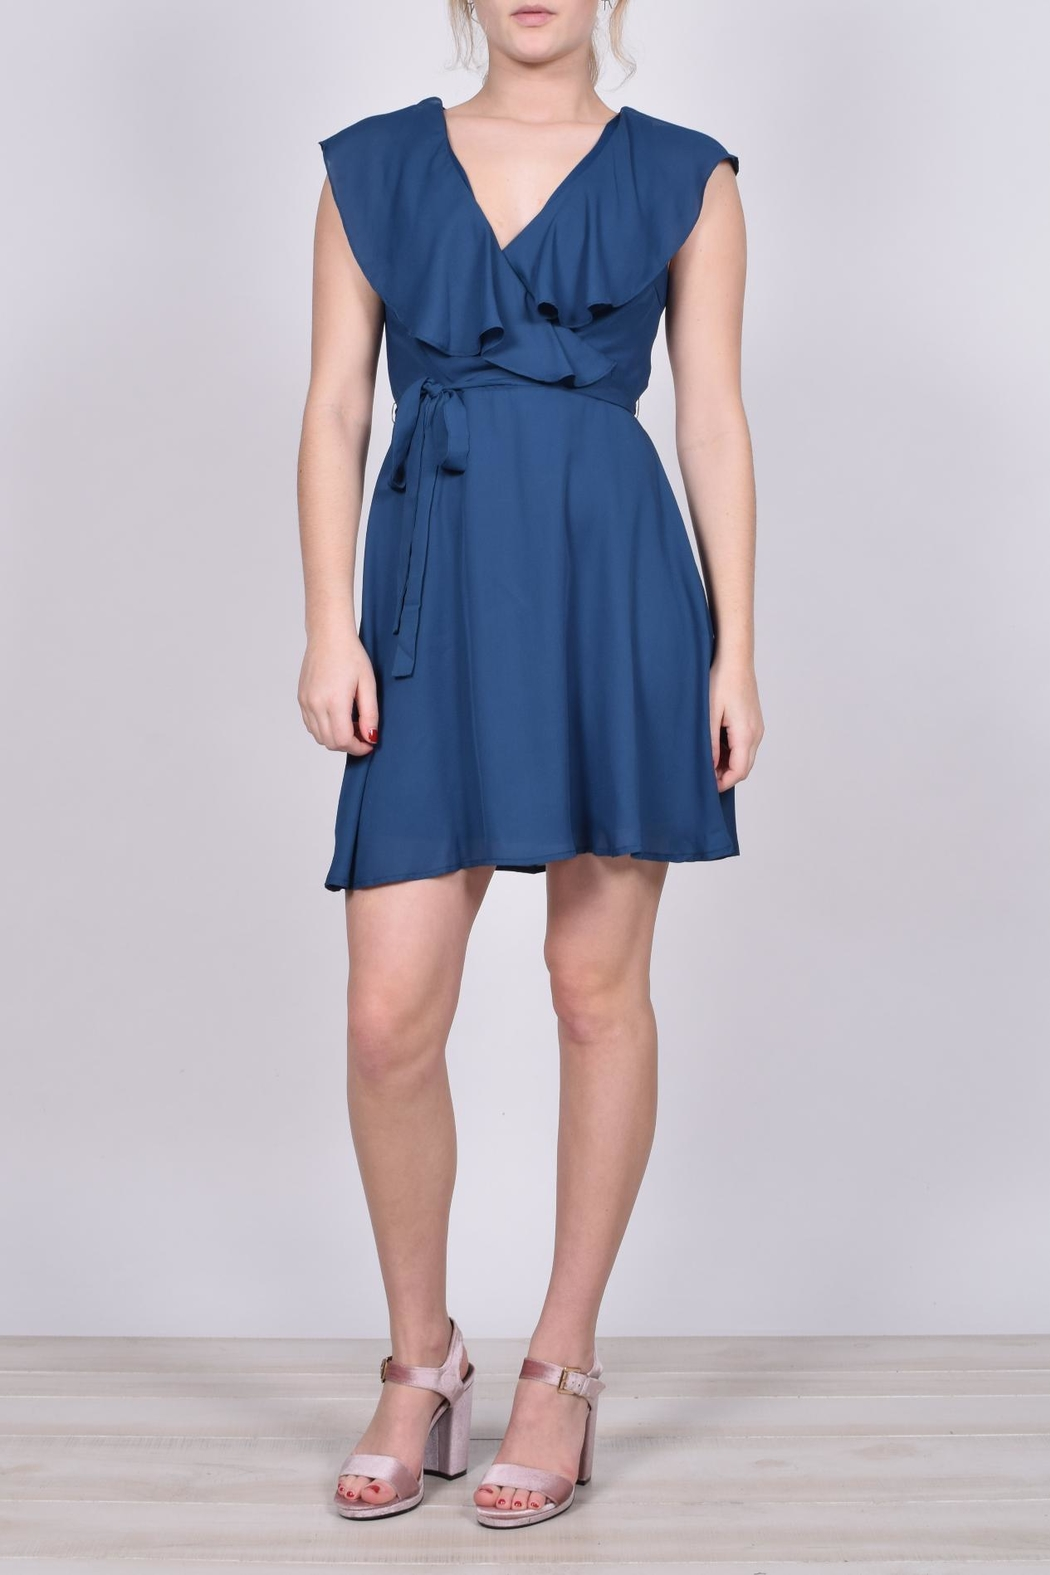 Unbranded Teal Ruffle Dress - Main Image